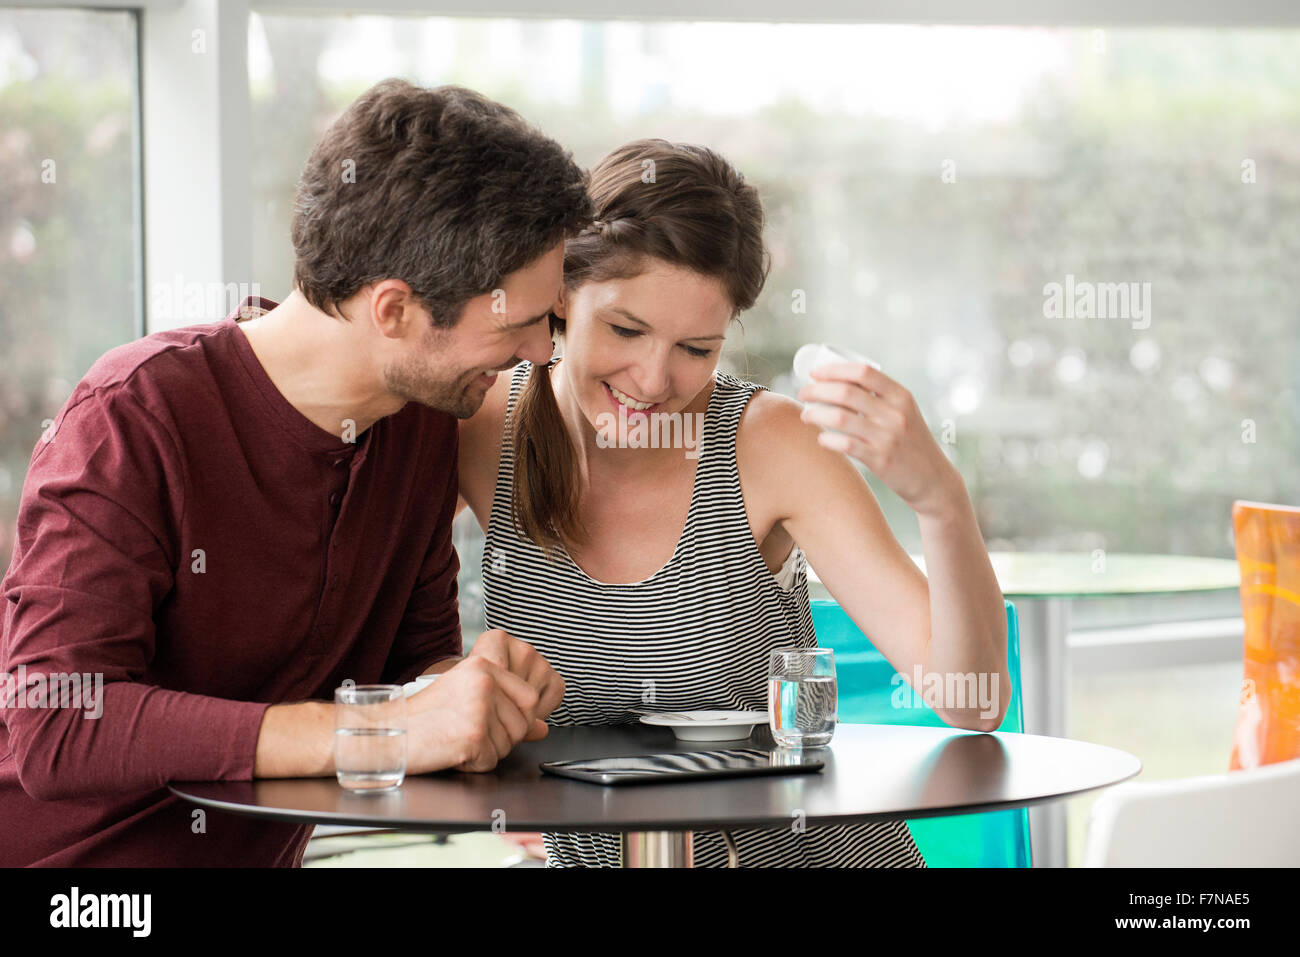 Couple in cafe watching video streaming on digital tablet - Stock Image